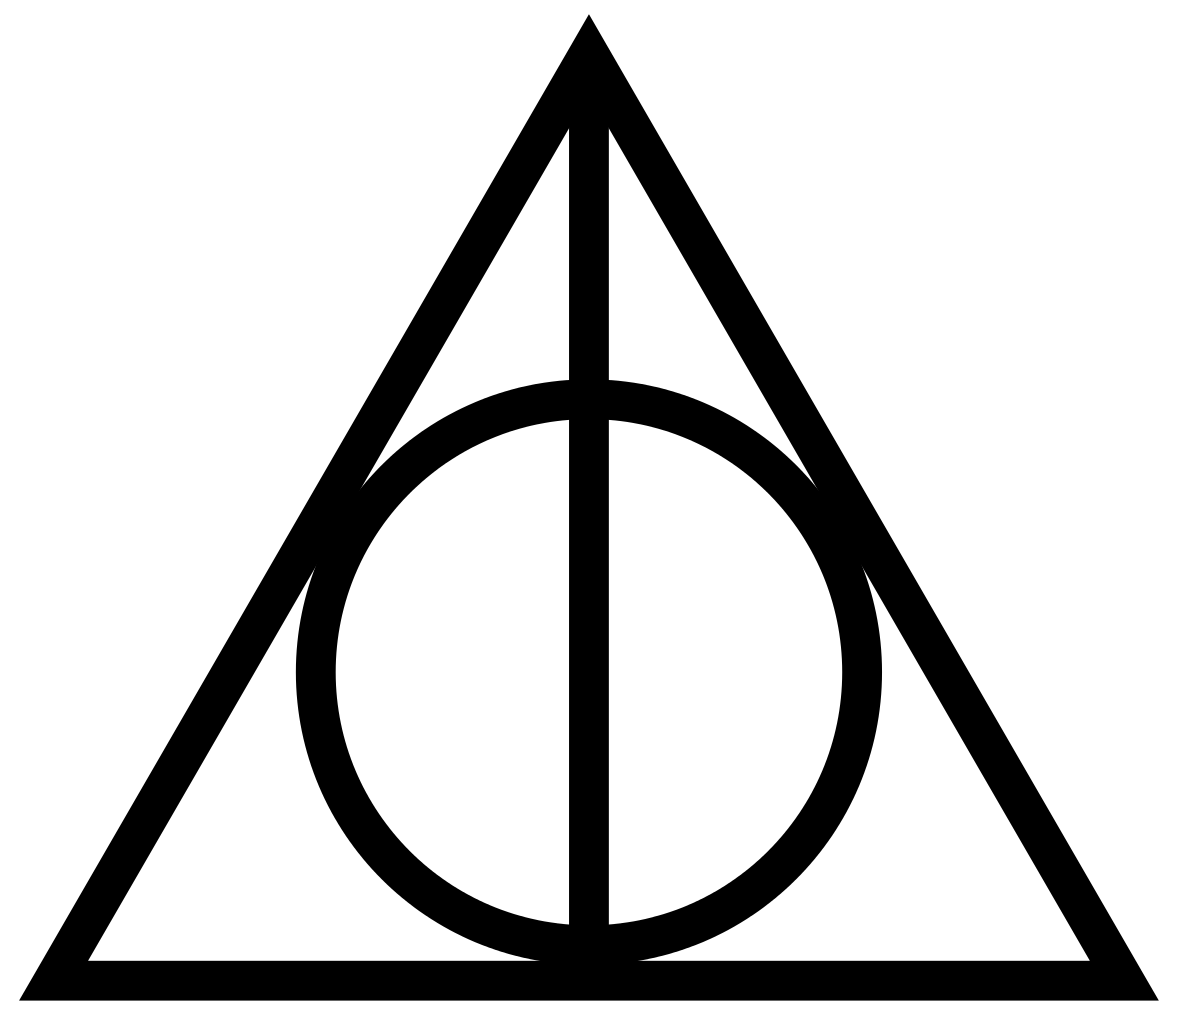 Harry potter house symbols clipart graphic free download 1179px-Deathly_Hallows_Sign.svg.png (1179×1024) | Favorite Logo ... graphic free download